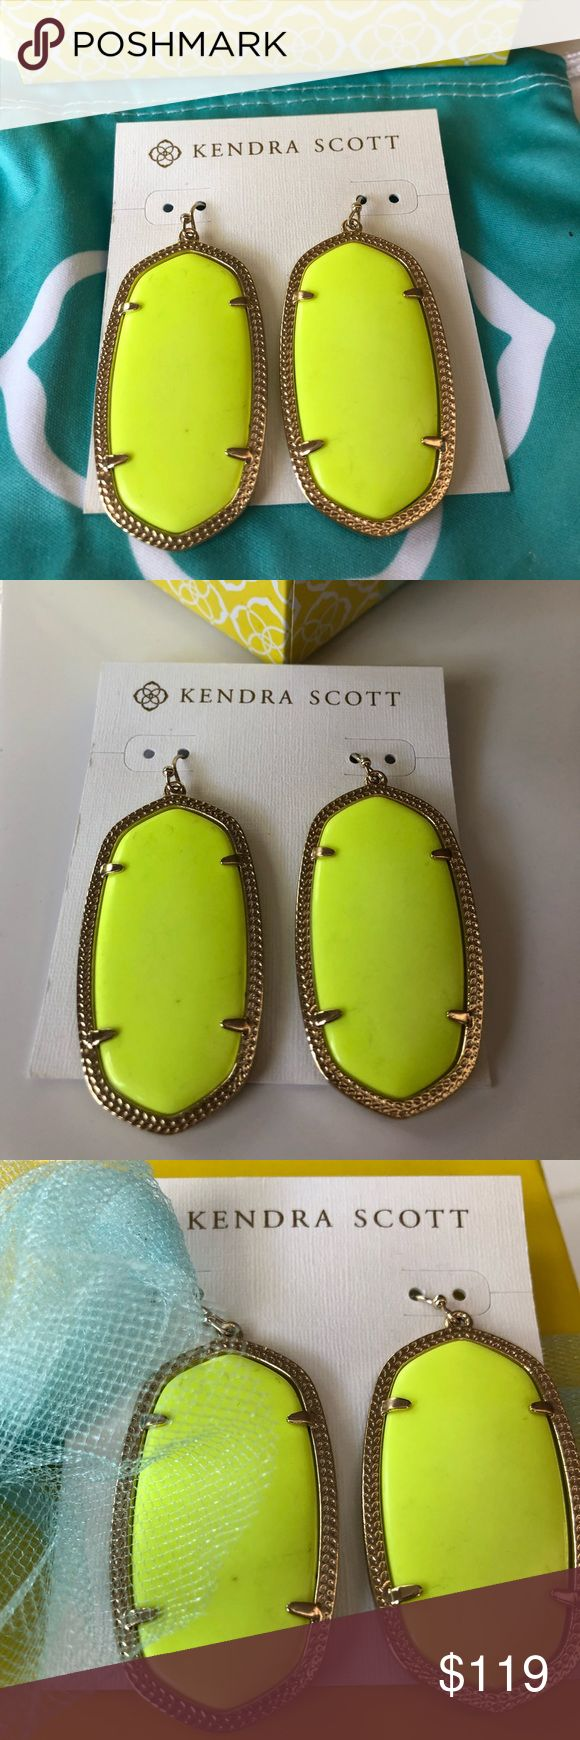 NWOT Kendra Scott Neon Yellow Danielle Earrings😊 These are the brightest ones out there! Never worn, these gorgeous neon yellow authentic Kendra Scott Danielle earrings in rich yellow gold are just fabulous! Comes with KS signature blue dust bag and cate card. Please no trades or lowballs😊 Kendra Scott Jewelry Earrings